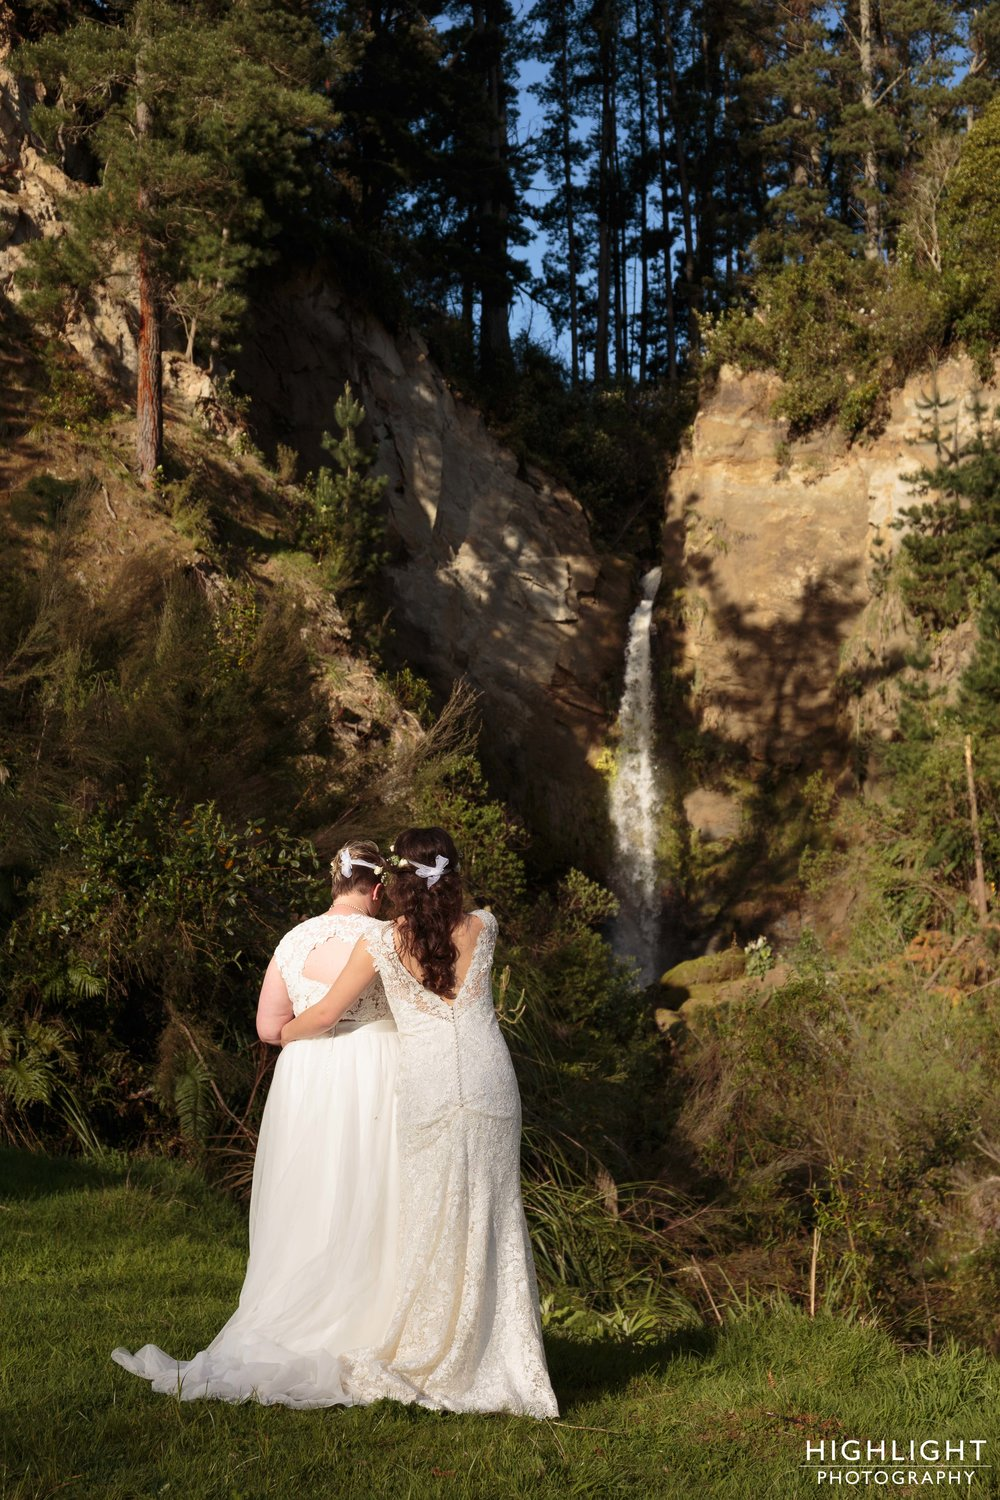 highlight_wedding_photography_makoura_lodge_manawatu_new_zealand-119.jpg